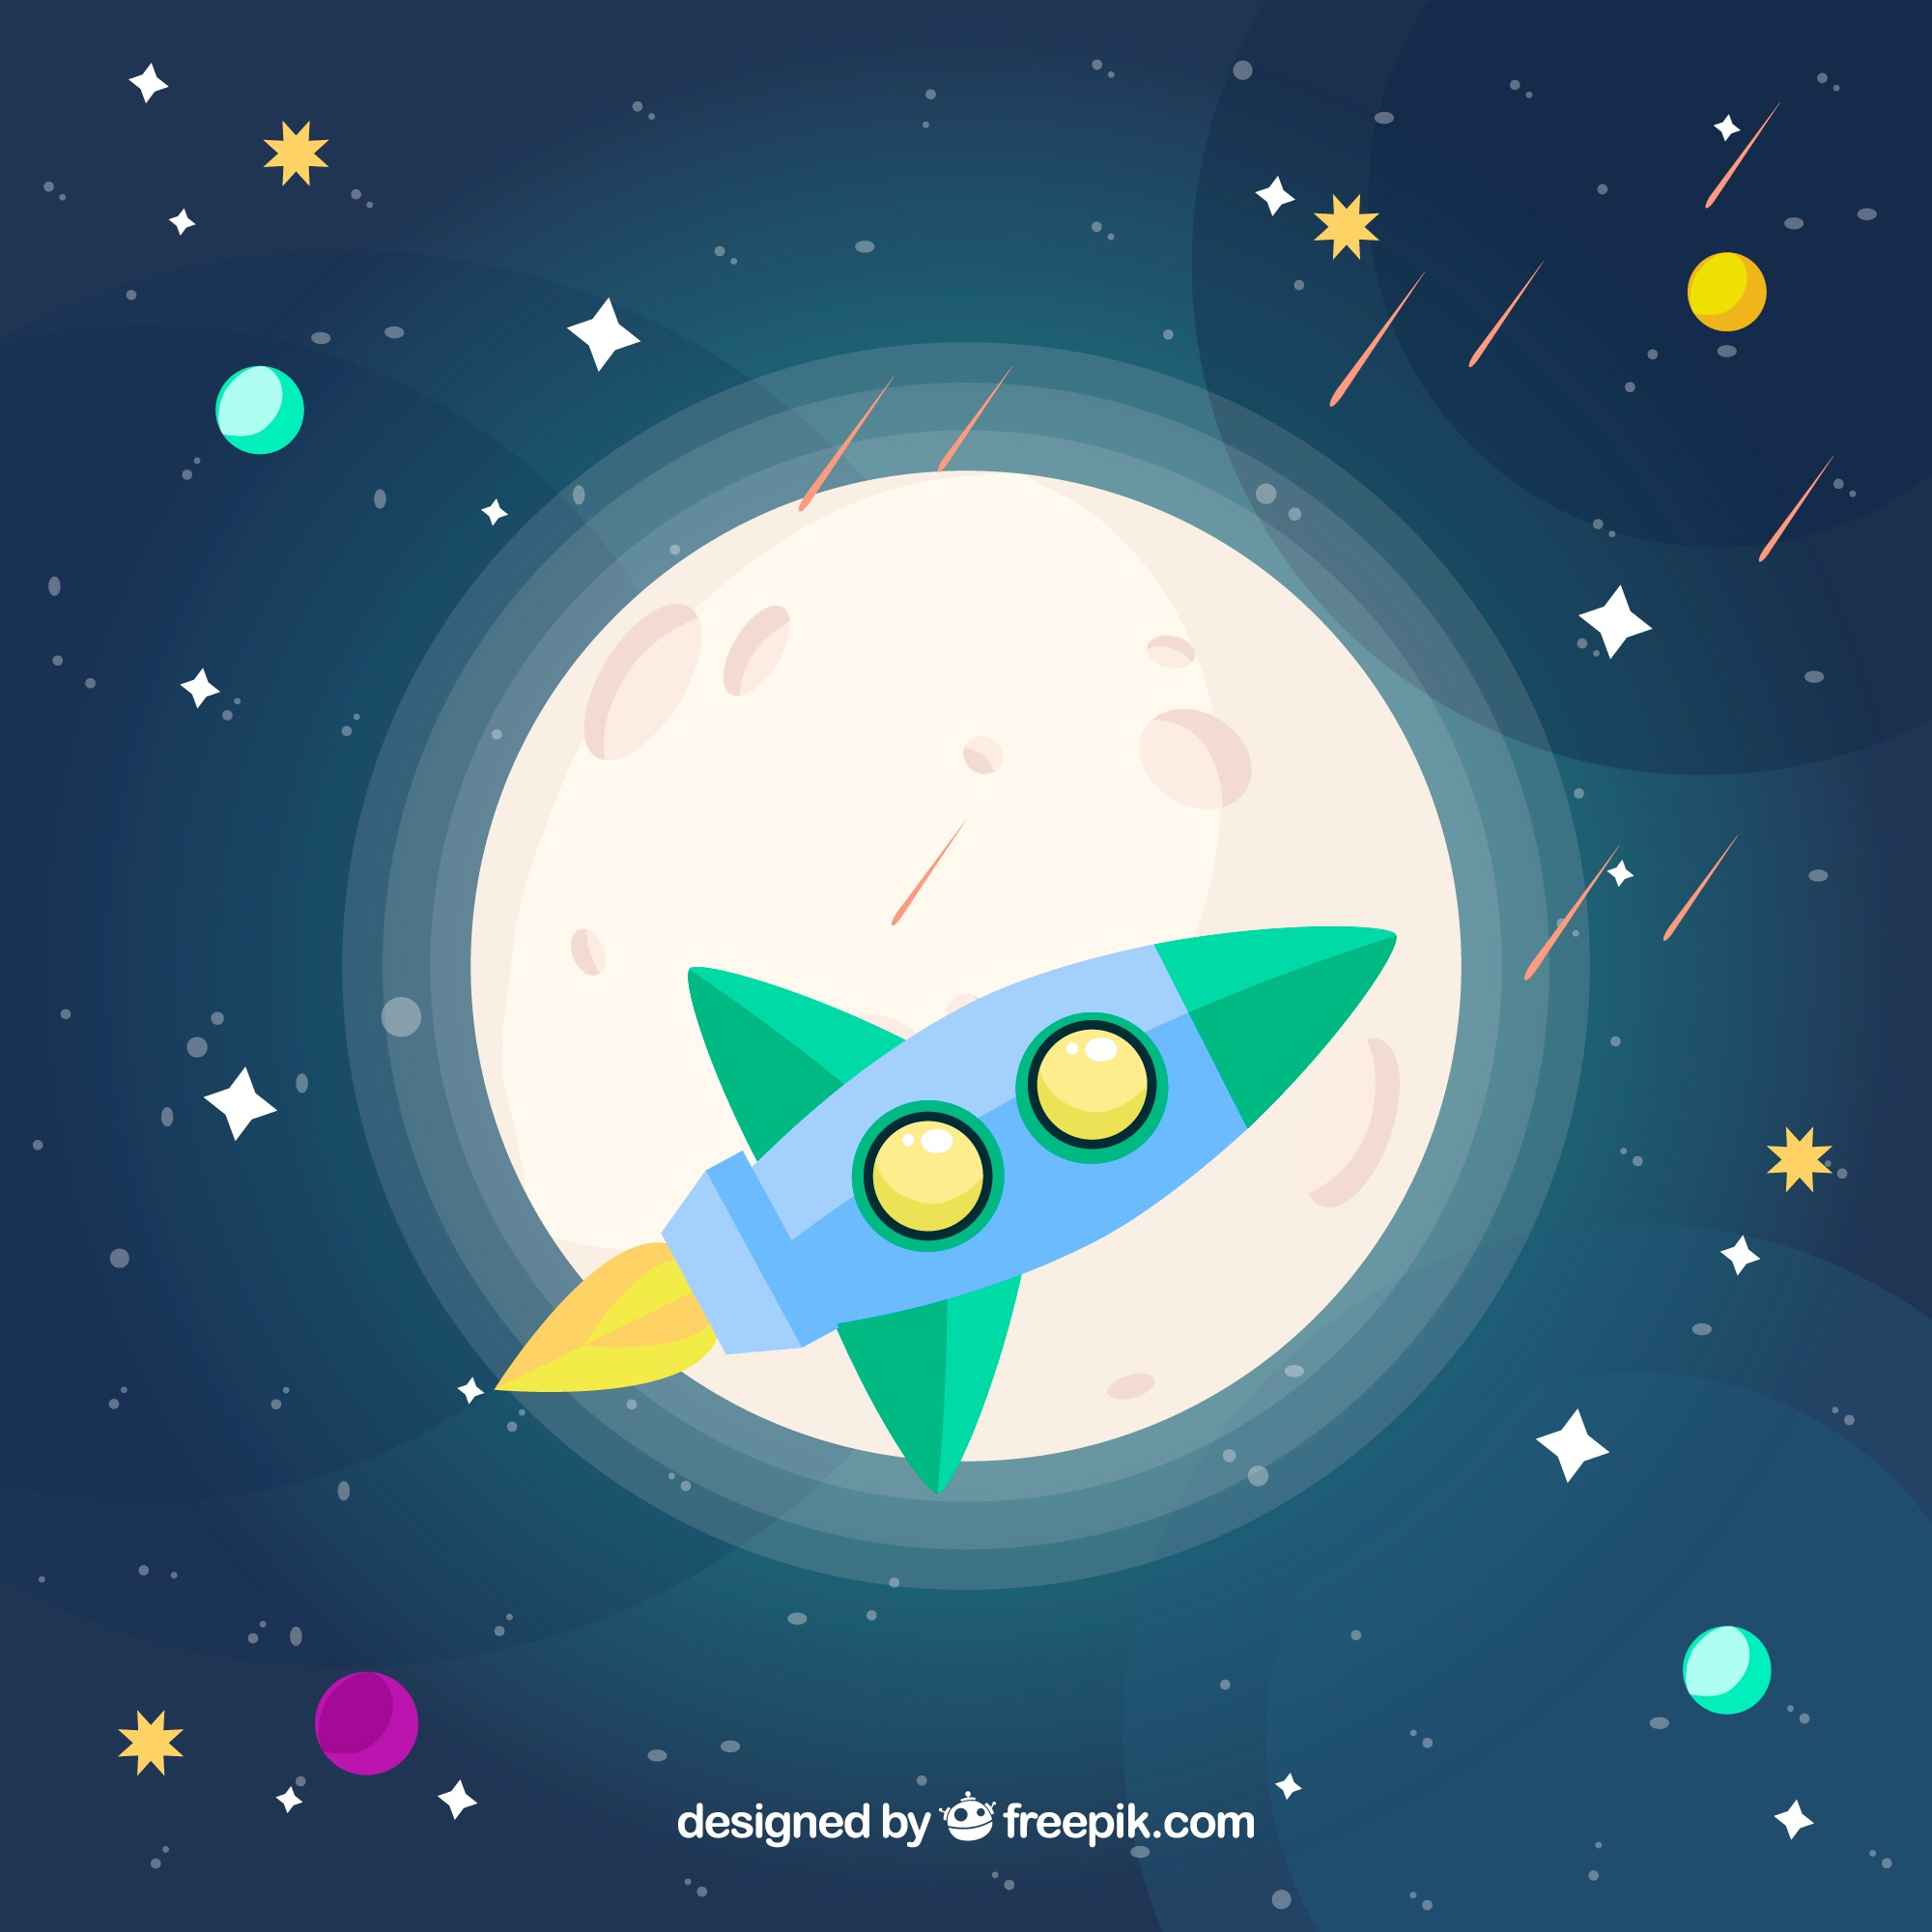 Rocket background and moon with stars in flat design